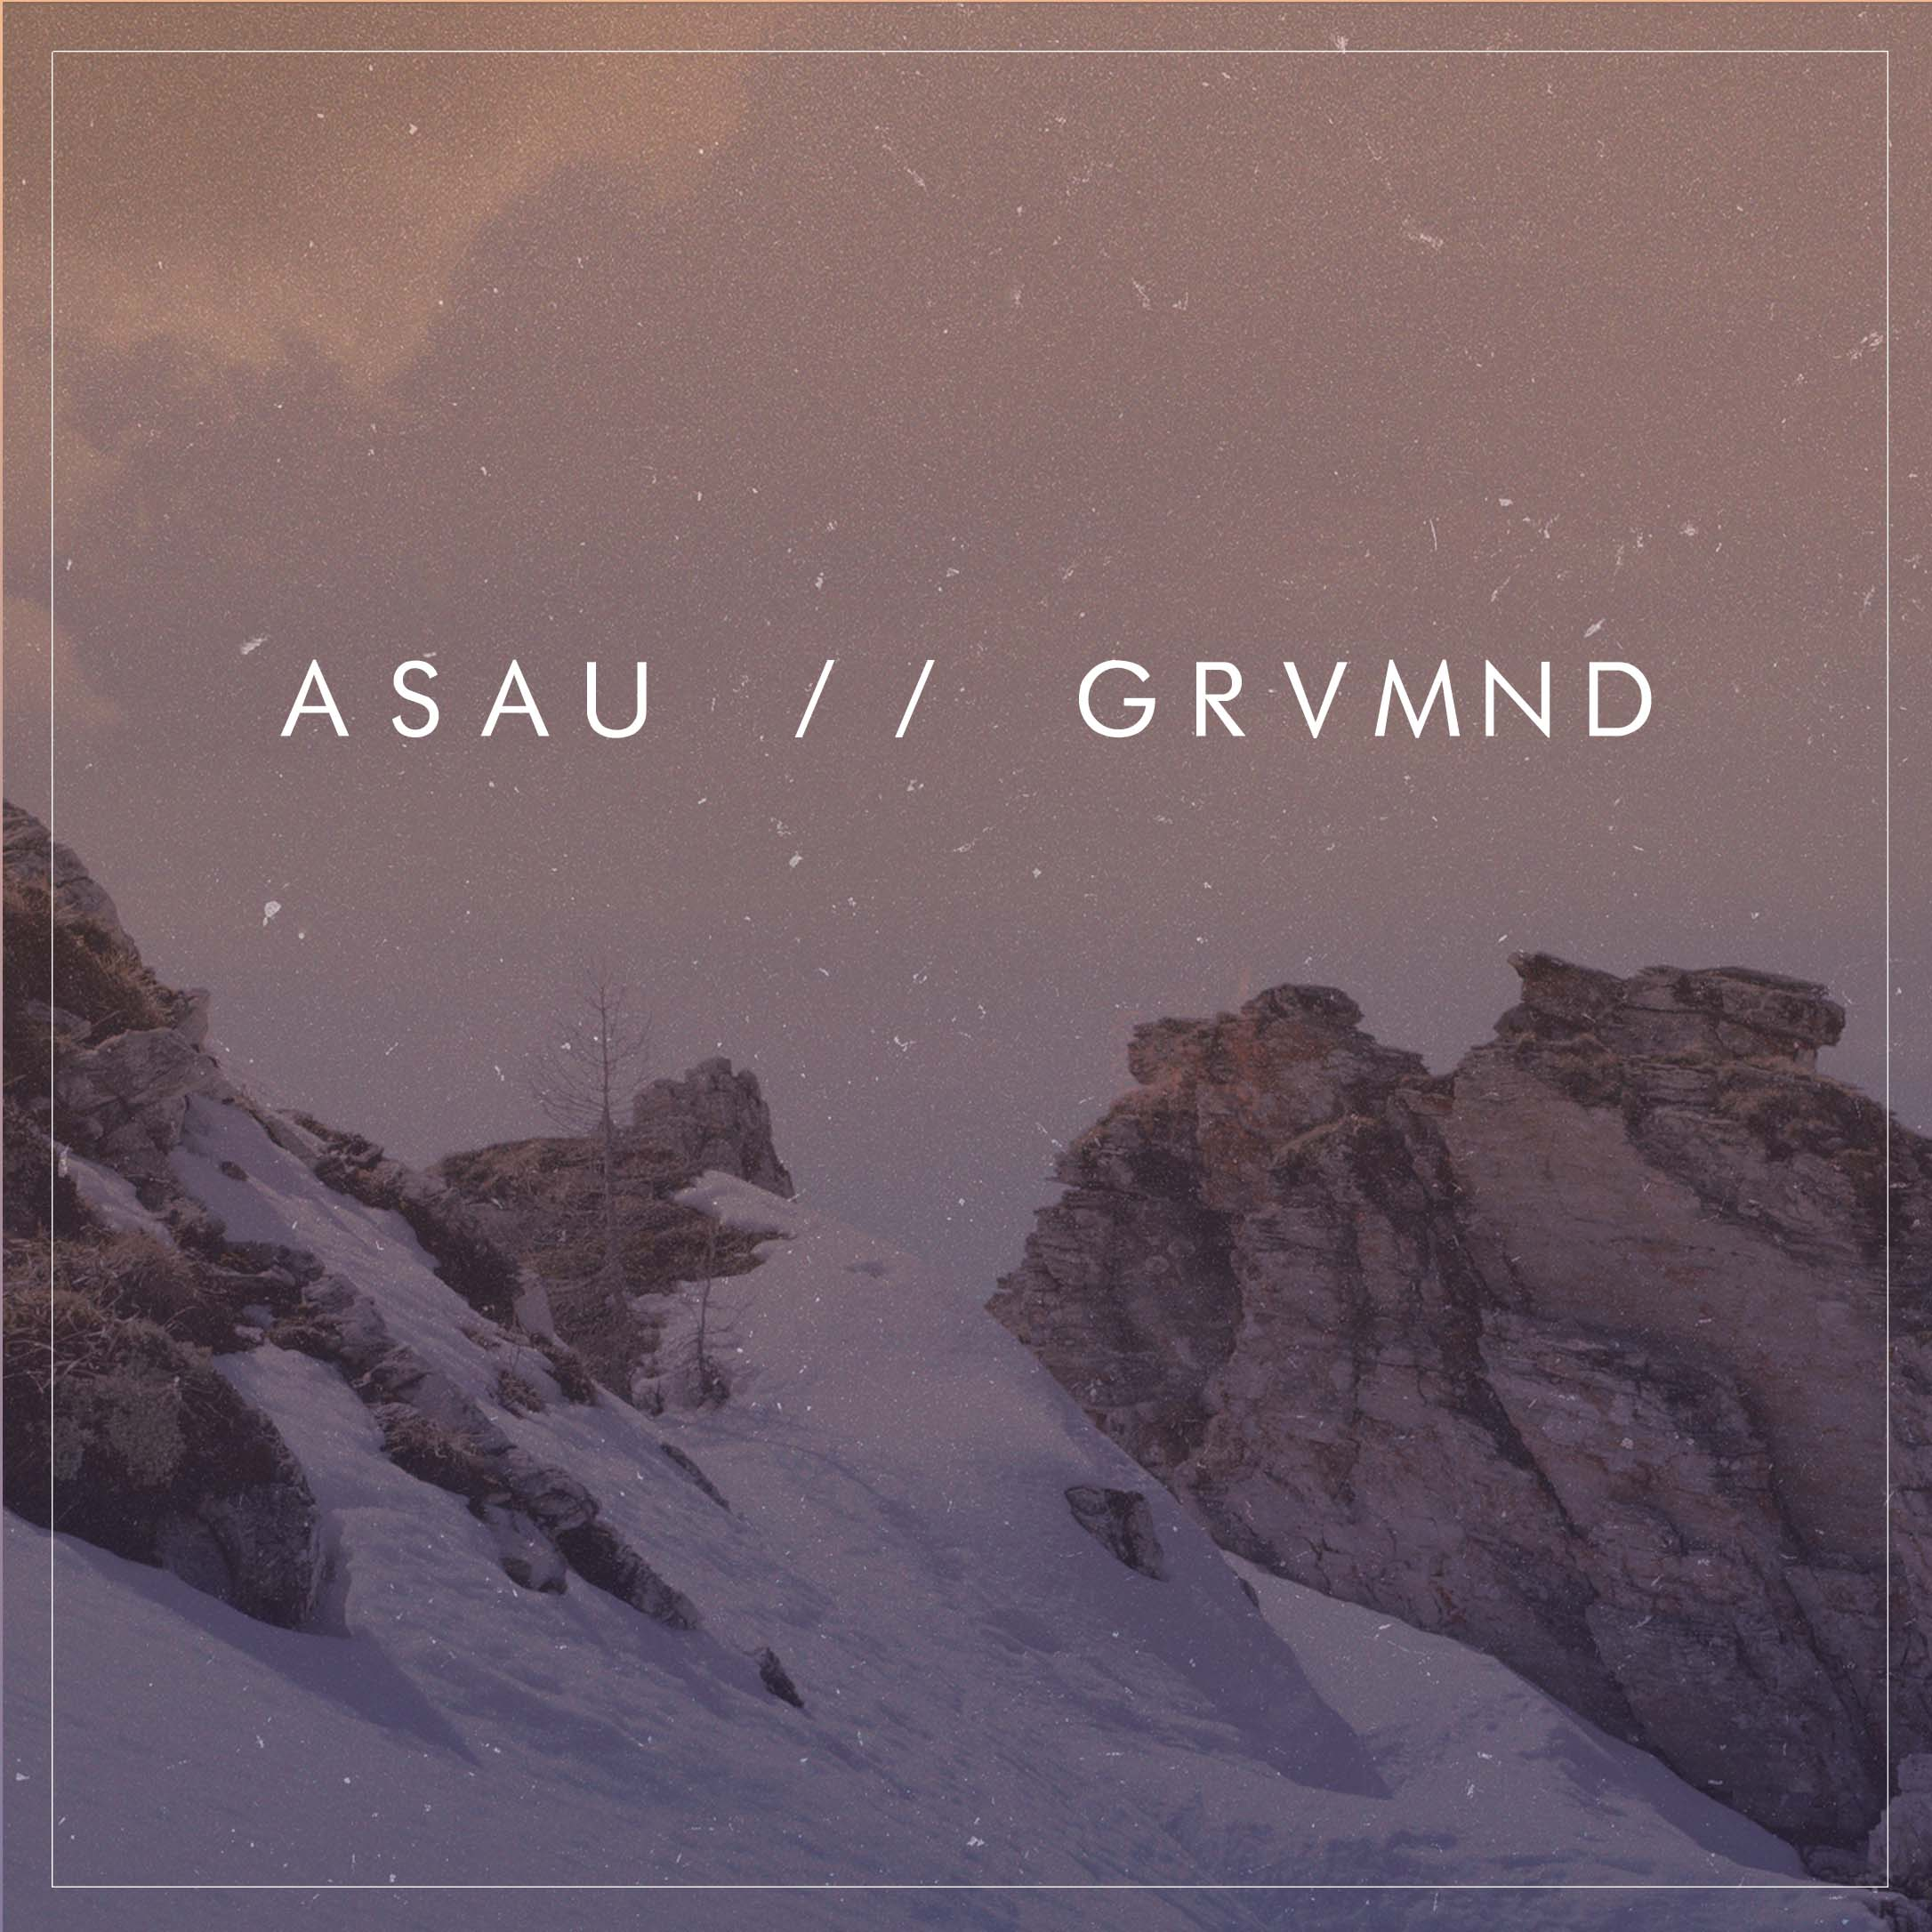 ASAU/Gravemind Split (7